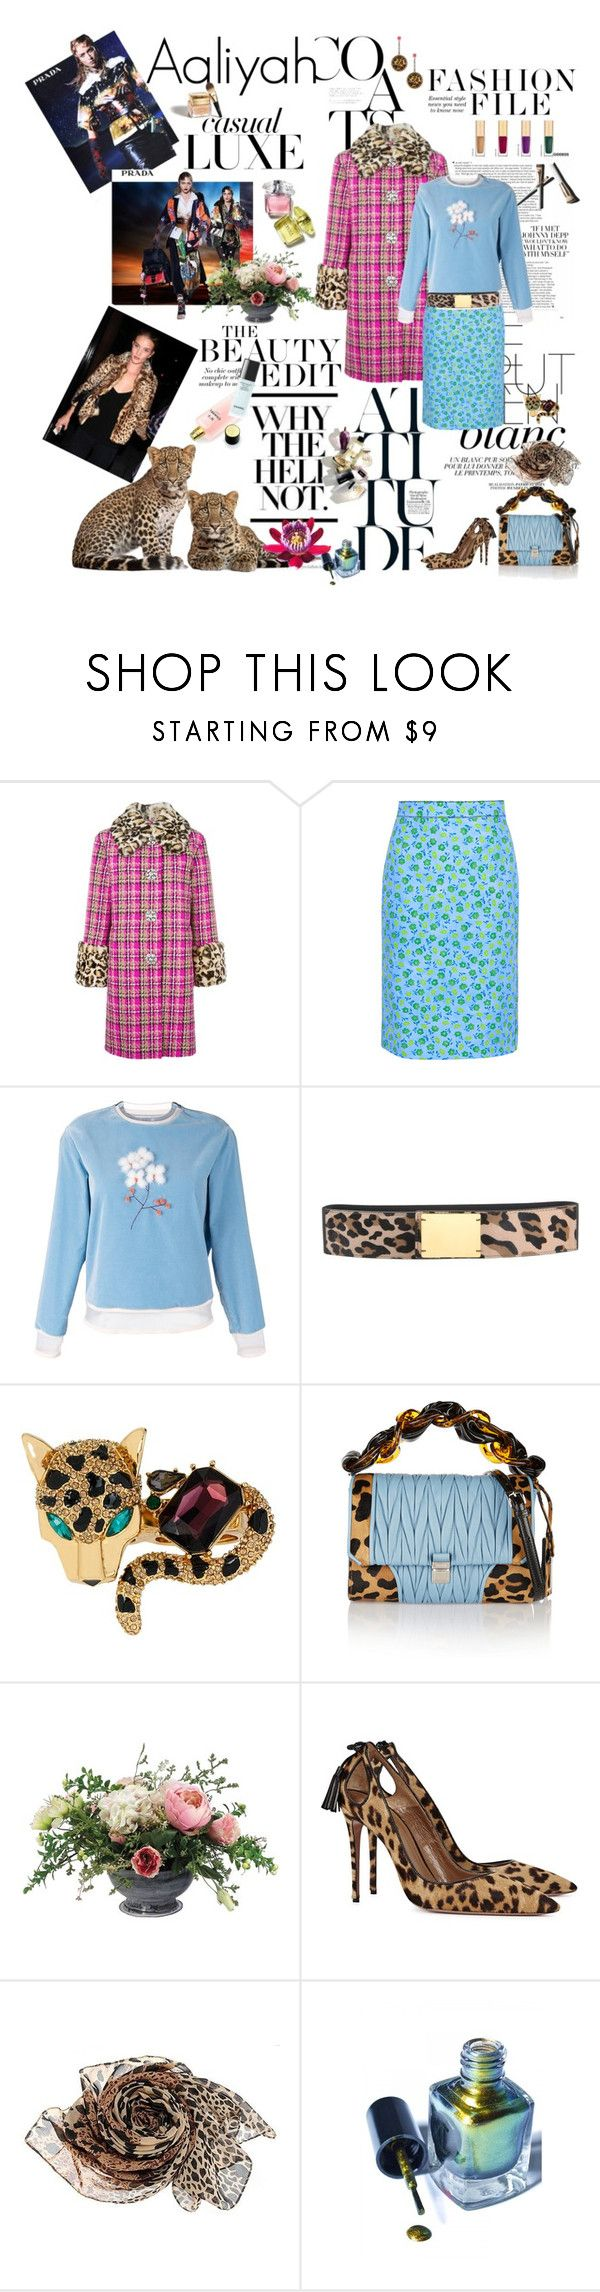 """Aaliyah 2017-017"" by aaliyah ❤ liked on Polyvore featuring Ex Voto Paris, Garance Doré, Marc Jacobs, Prada, Fendi, Marni, Betsey Johnson, Miu Miu, Allstate Floral and Aquazzura"